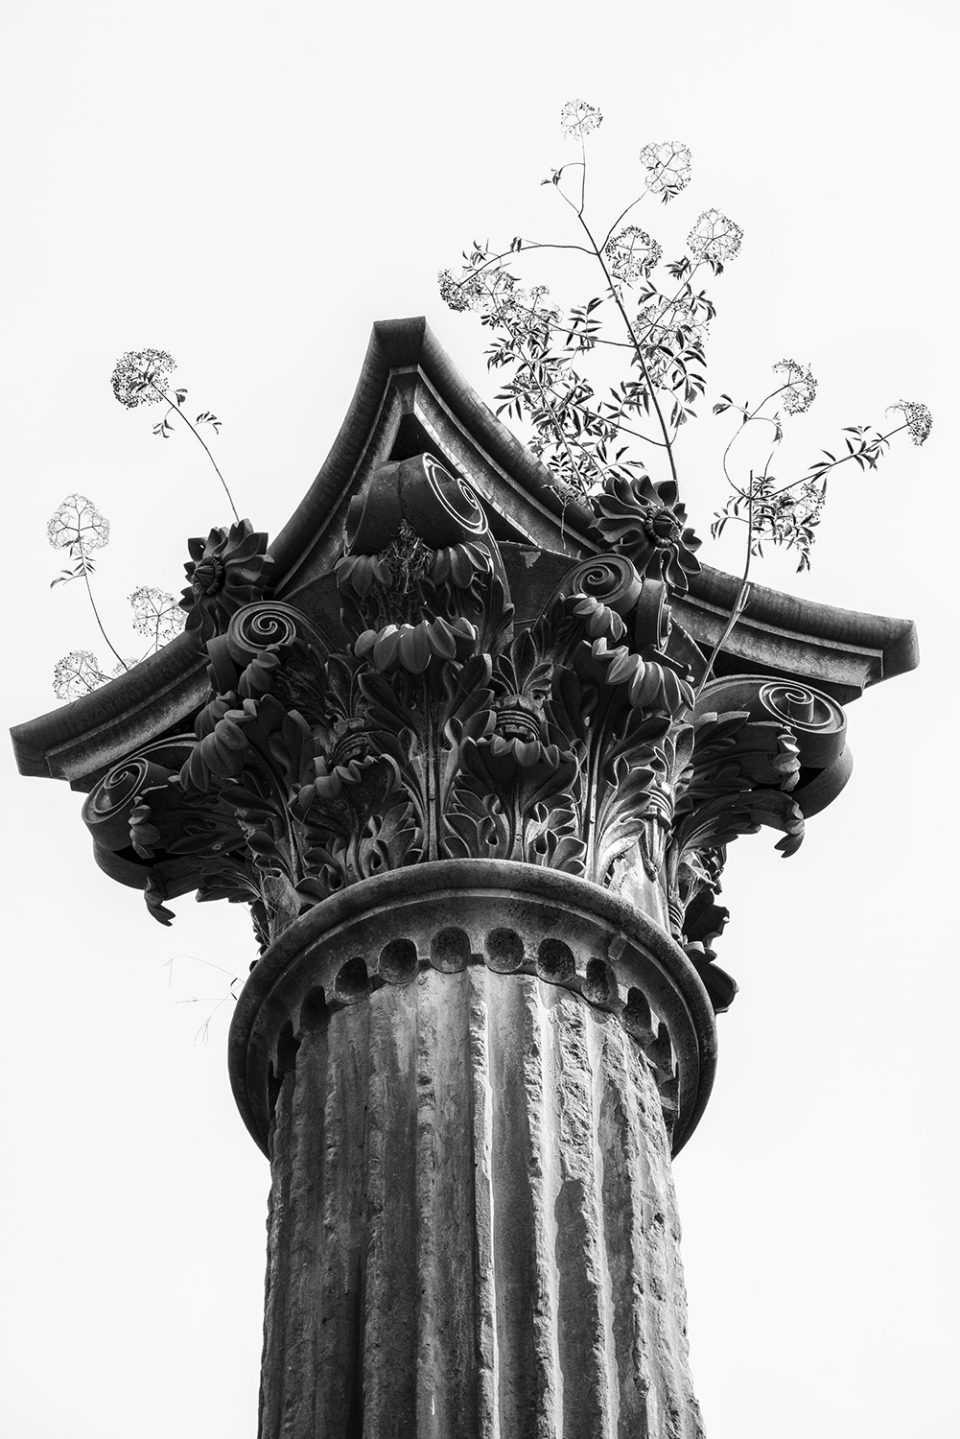 Mysterious column with plants growing from its capital, black and white photograph by Keith Dotson. Click to buy a fine art print.